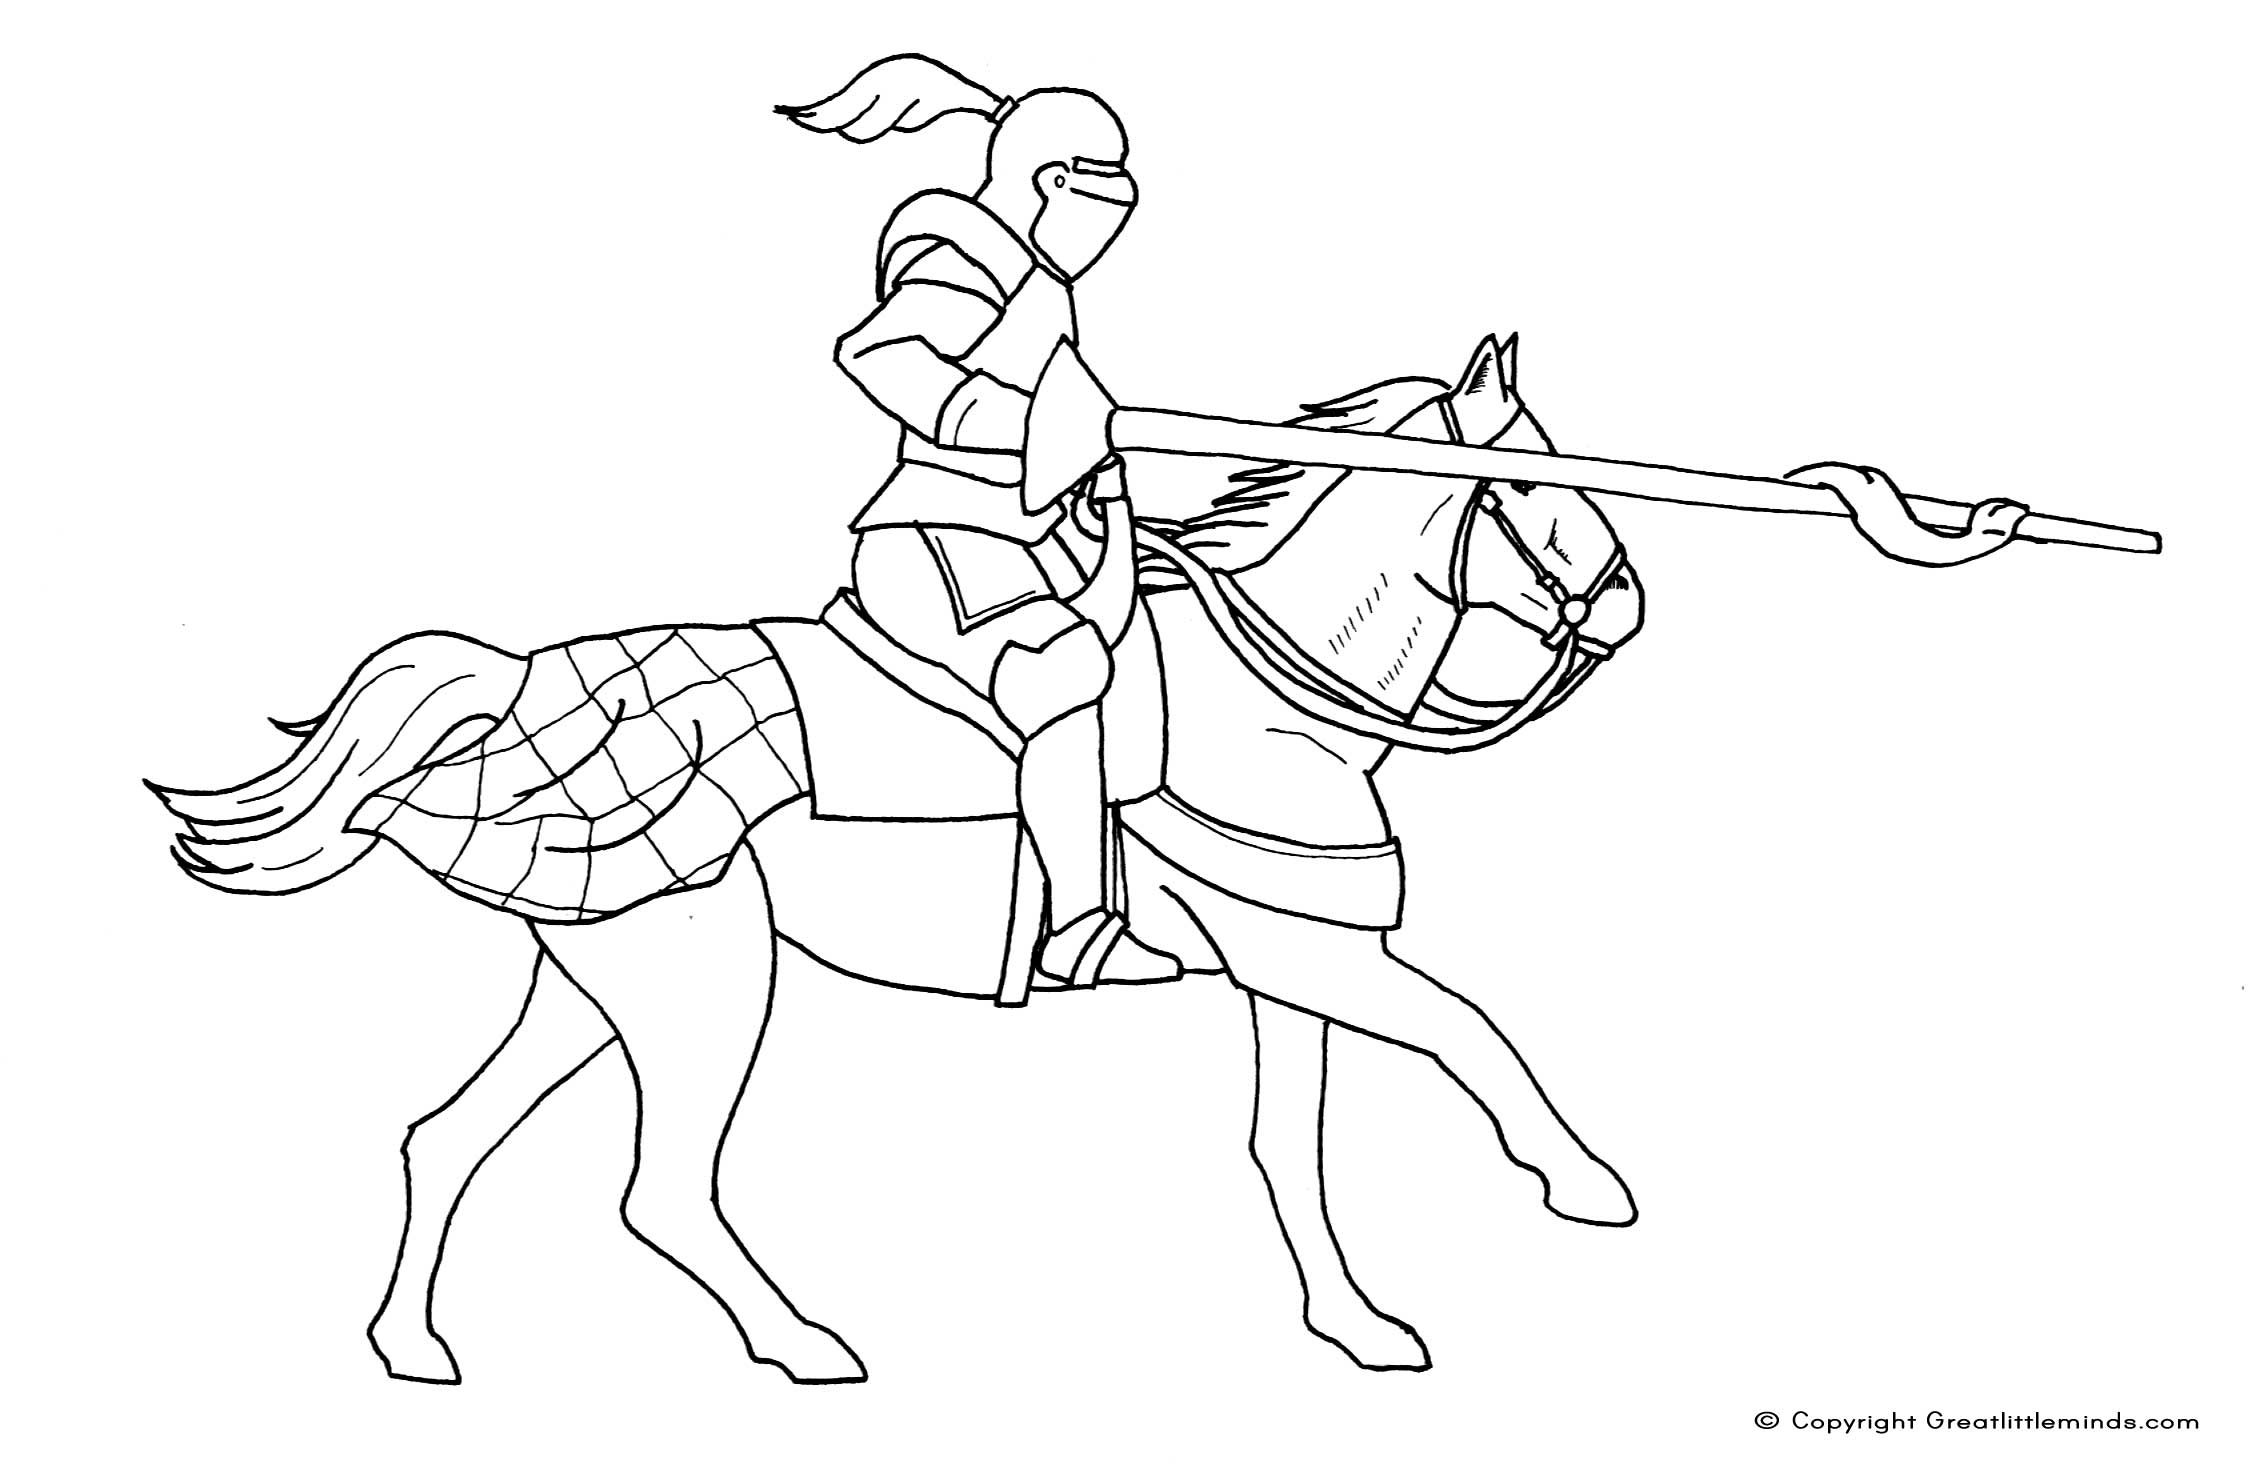 medieval knight coloring pages medieval knights coloring pages coloring home knight medieval pages coloring